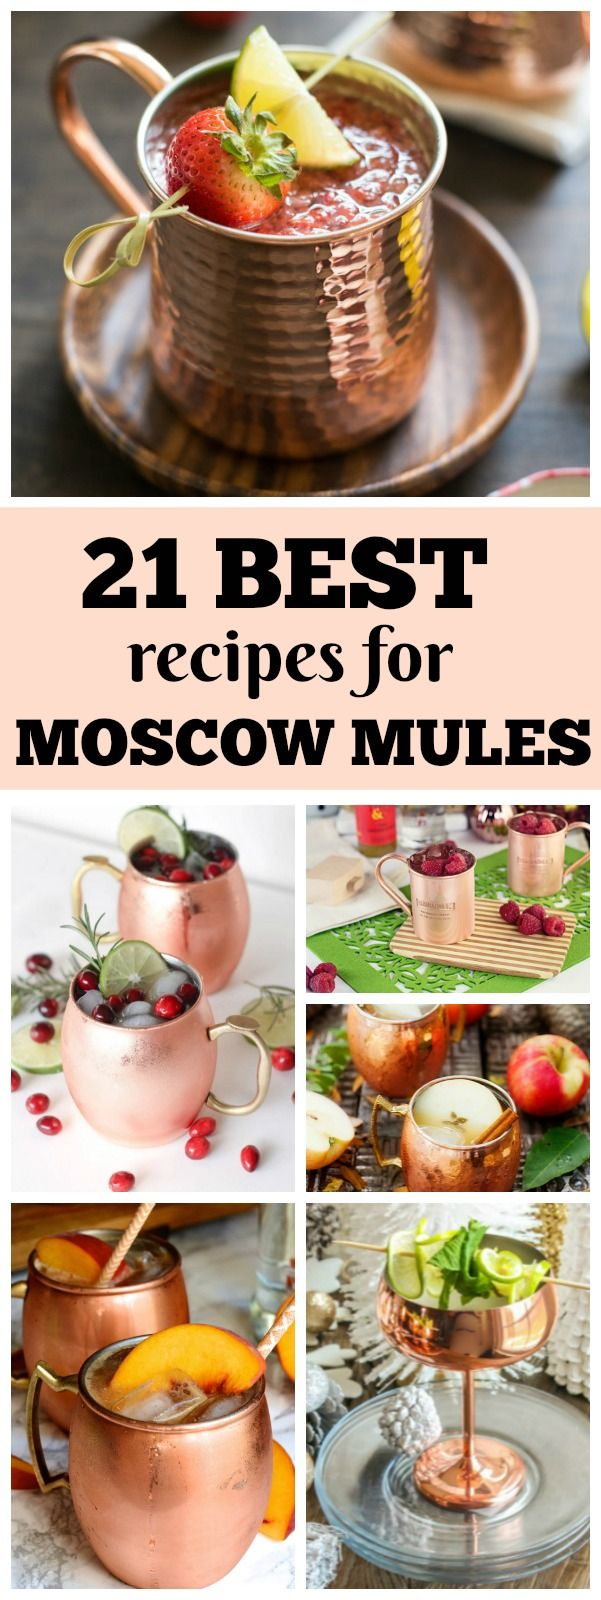 21 BEST RECIPES FOR MOSCOW MULES.- Perfect for New Year's Eve!  There is going to be something in this collection that you will love!  You'll find recipes for varieties such as the Peach Moscow Mule, Blackberry Moscow Mule, Strawberry Moscow Mule, Apple- Cinnamon Moscow Mules, Pomegranate Moscow Mules and — of course– the classic Moscow Mule and many more.